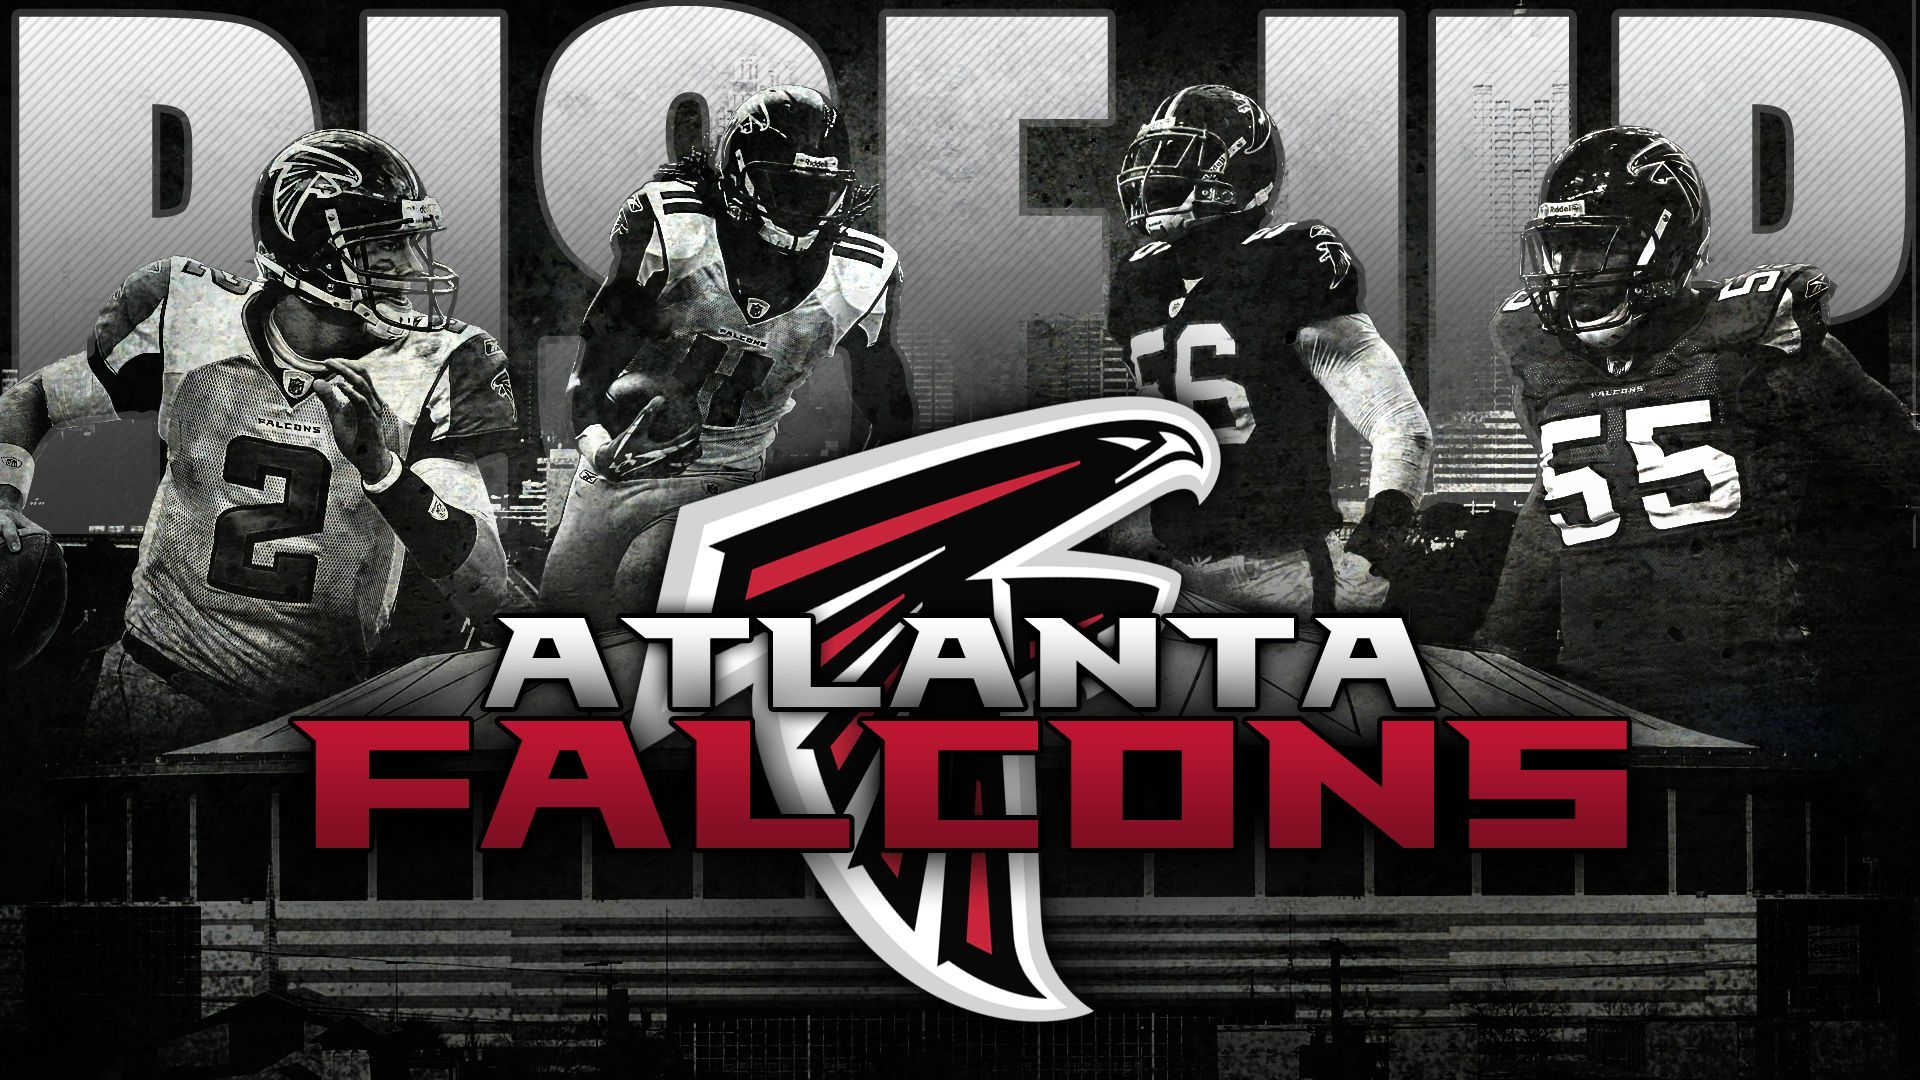 Rise Up Falcons Wallpaper I Made For The Playoffs Imgur Atlanta Falcons Wallpaper Atlanta Falcons Rise Up Falcons Rise Up